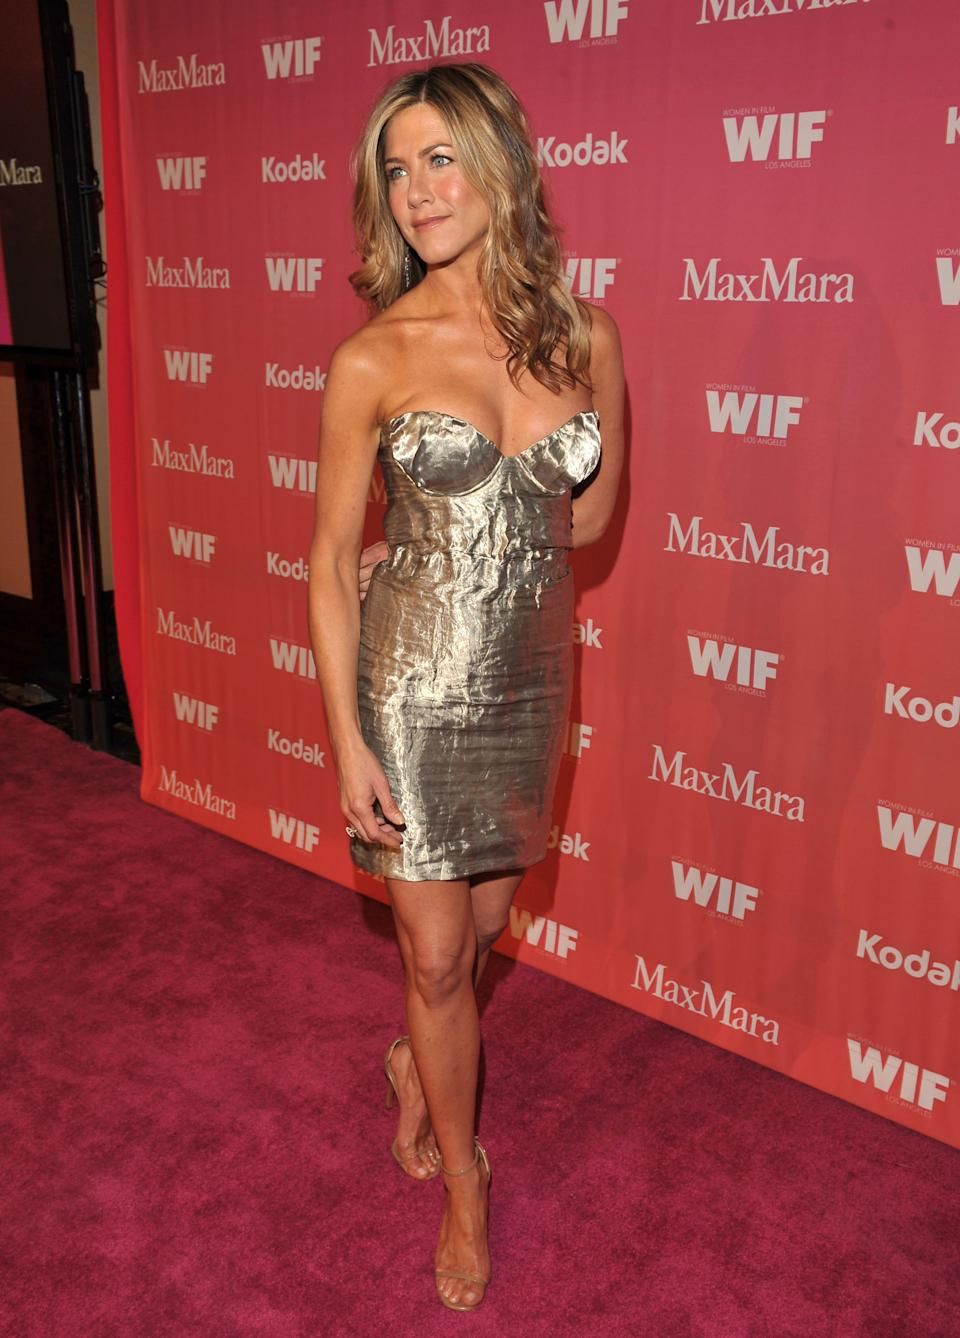 Aniston opted for a silver Prada mini-dress for the 2009 Women In Film Awards. (Photo by Lester Cohen/WireImage)